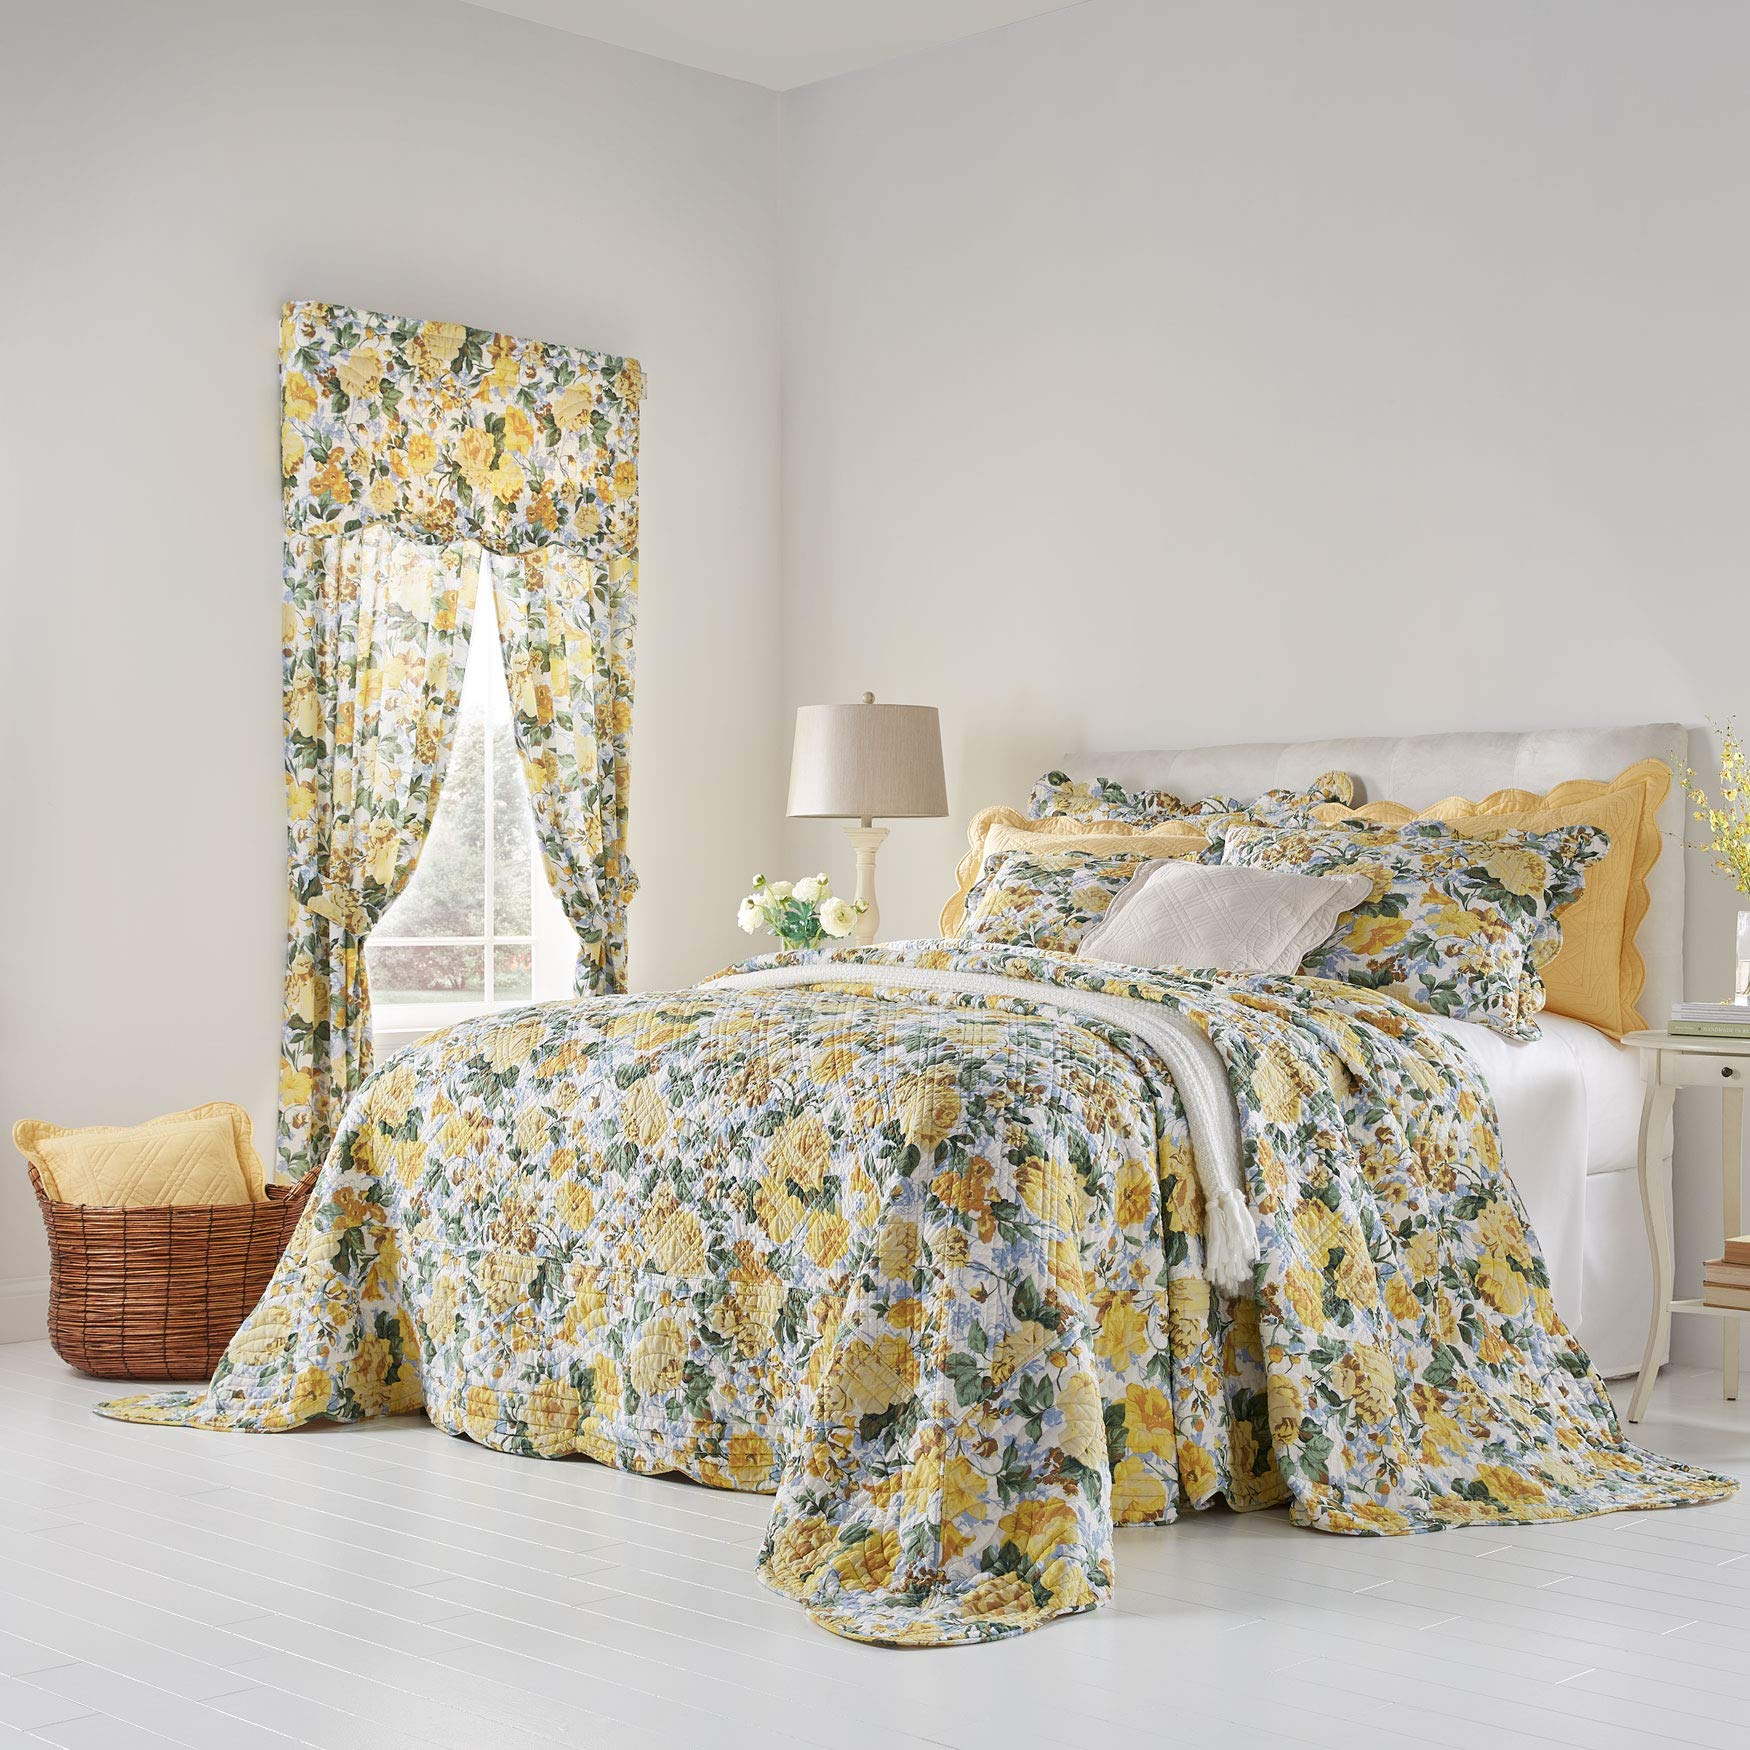 BrylaneHome Florence Oversized Bedspread - Full, Floral Multi